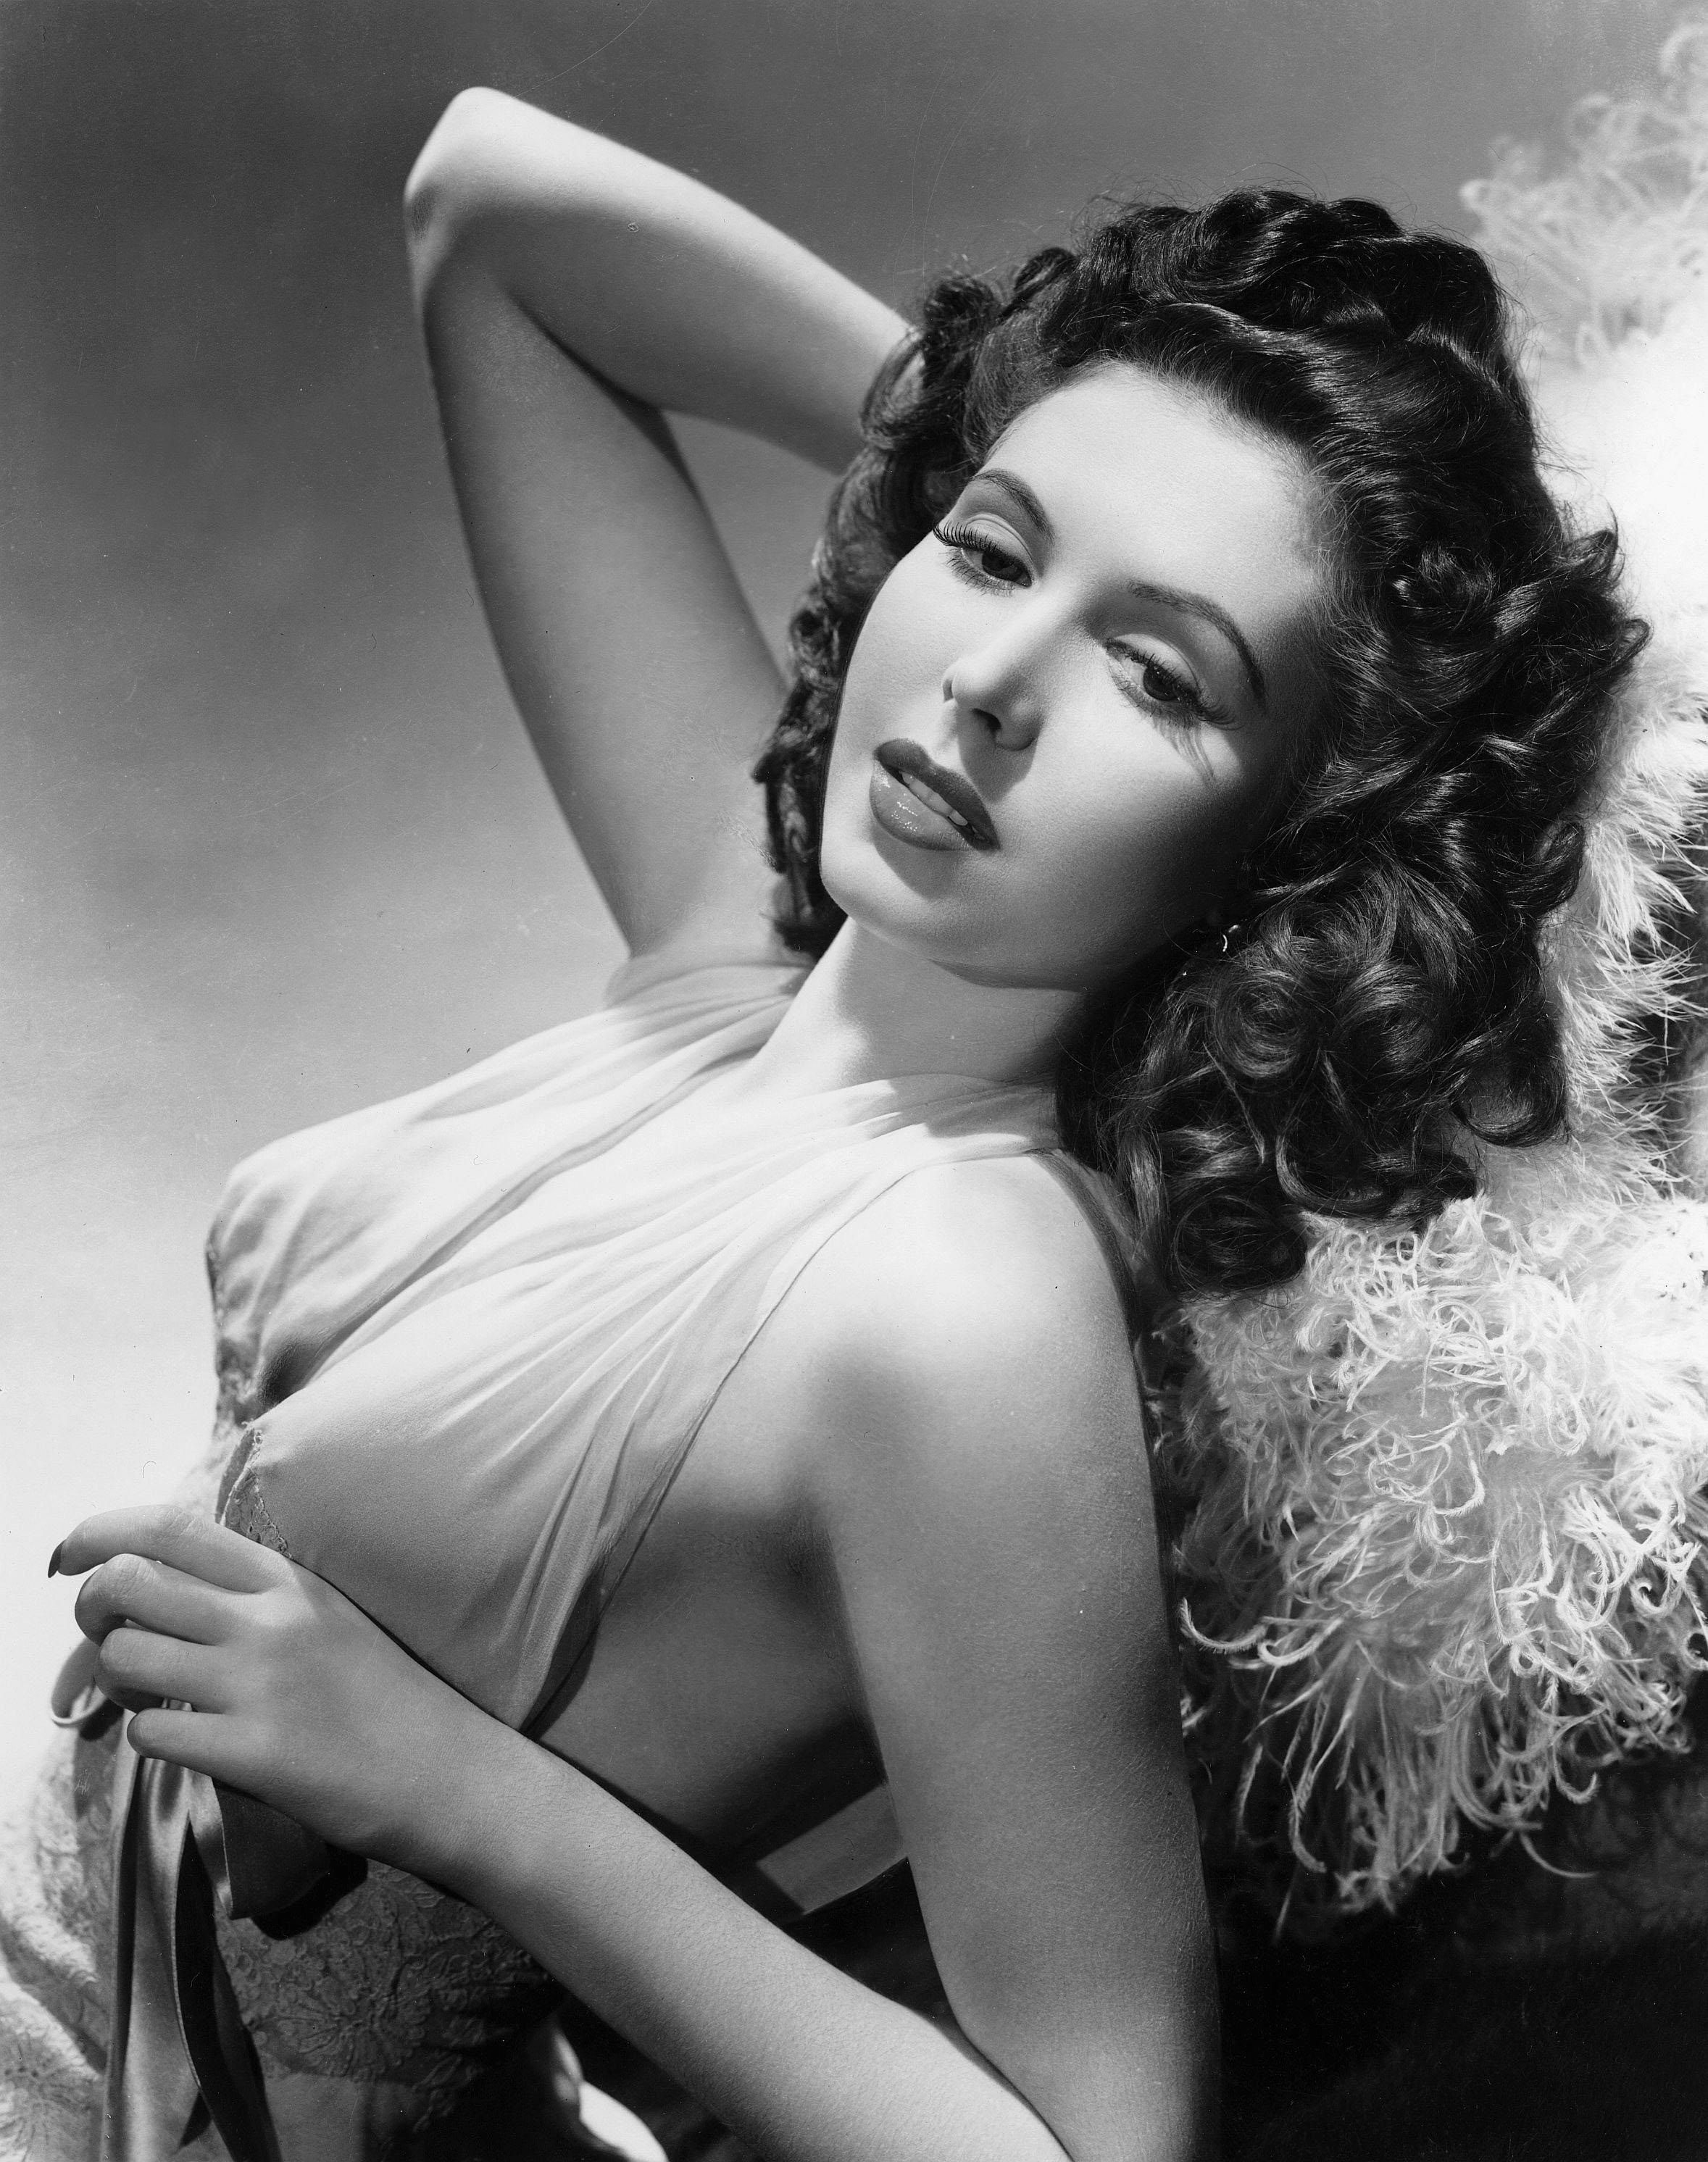 Lana turner sexy picture star actress pin